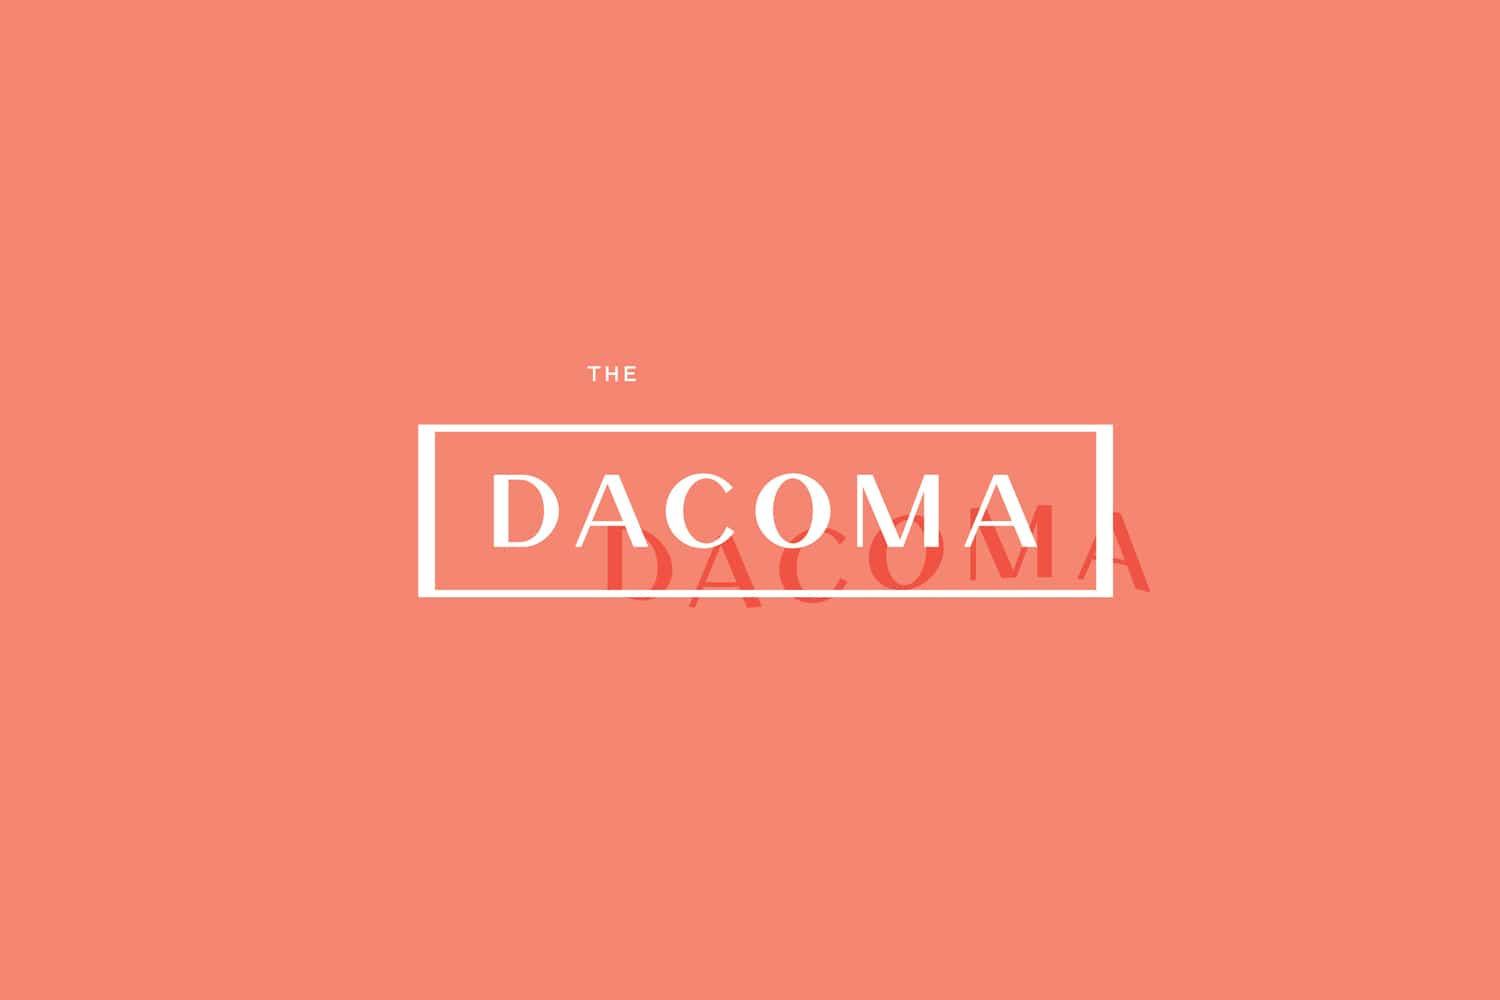 The Dacoma | SDCO Partners